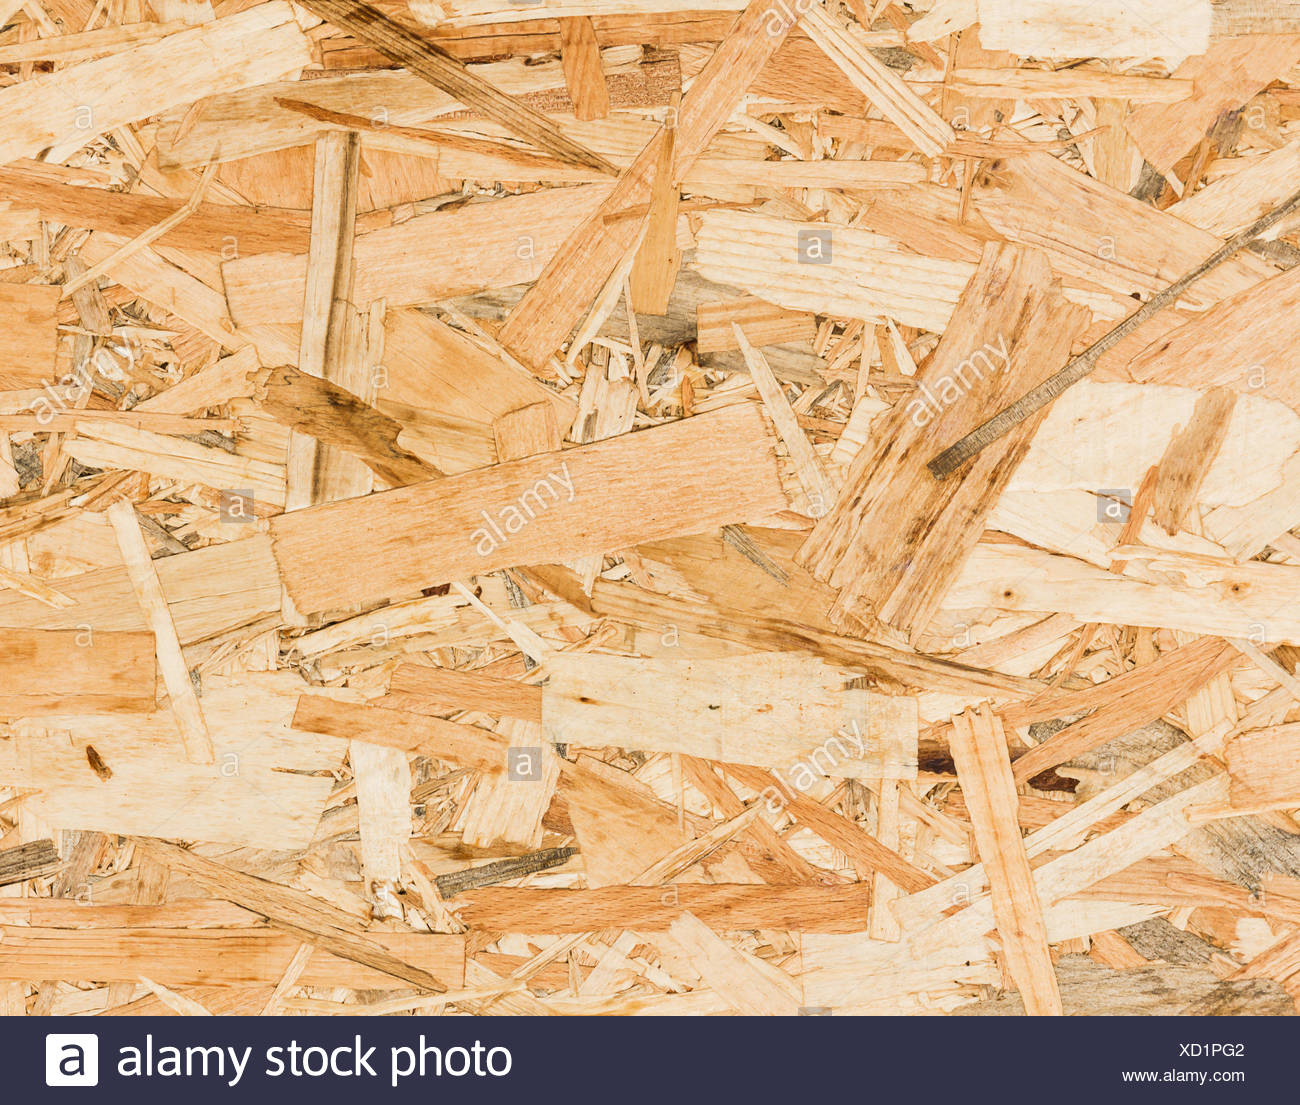 Osb Board Floor Stock Photos Osb Board Floor Stock Images Alamy